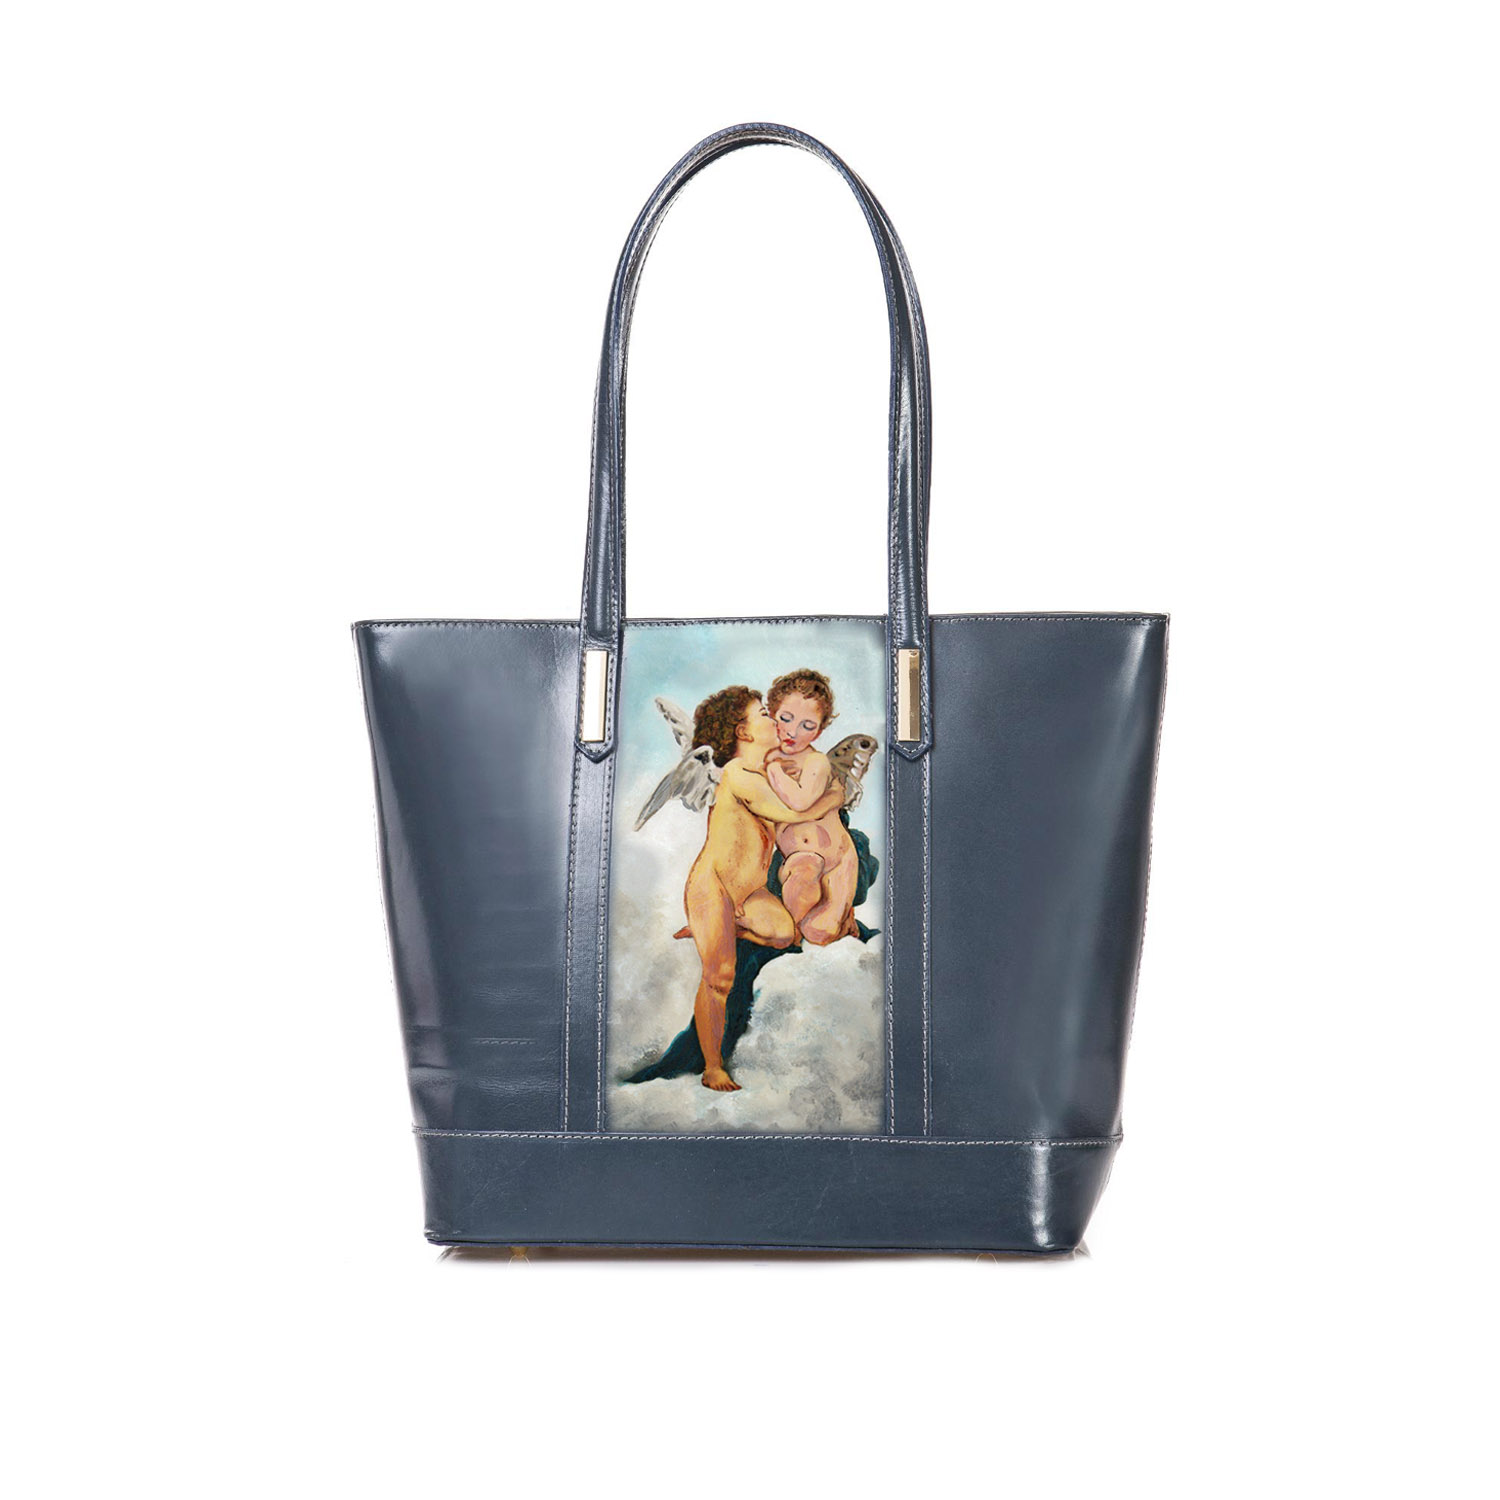 Handpainted bag - Love and Psyche children by Bouguereau